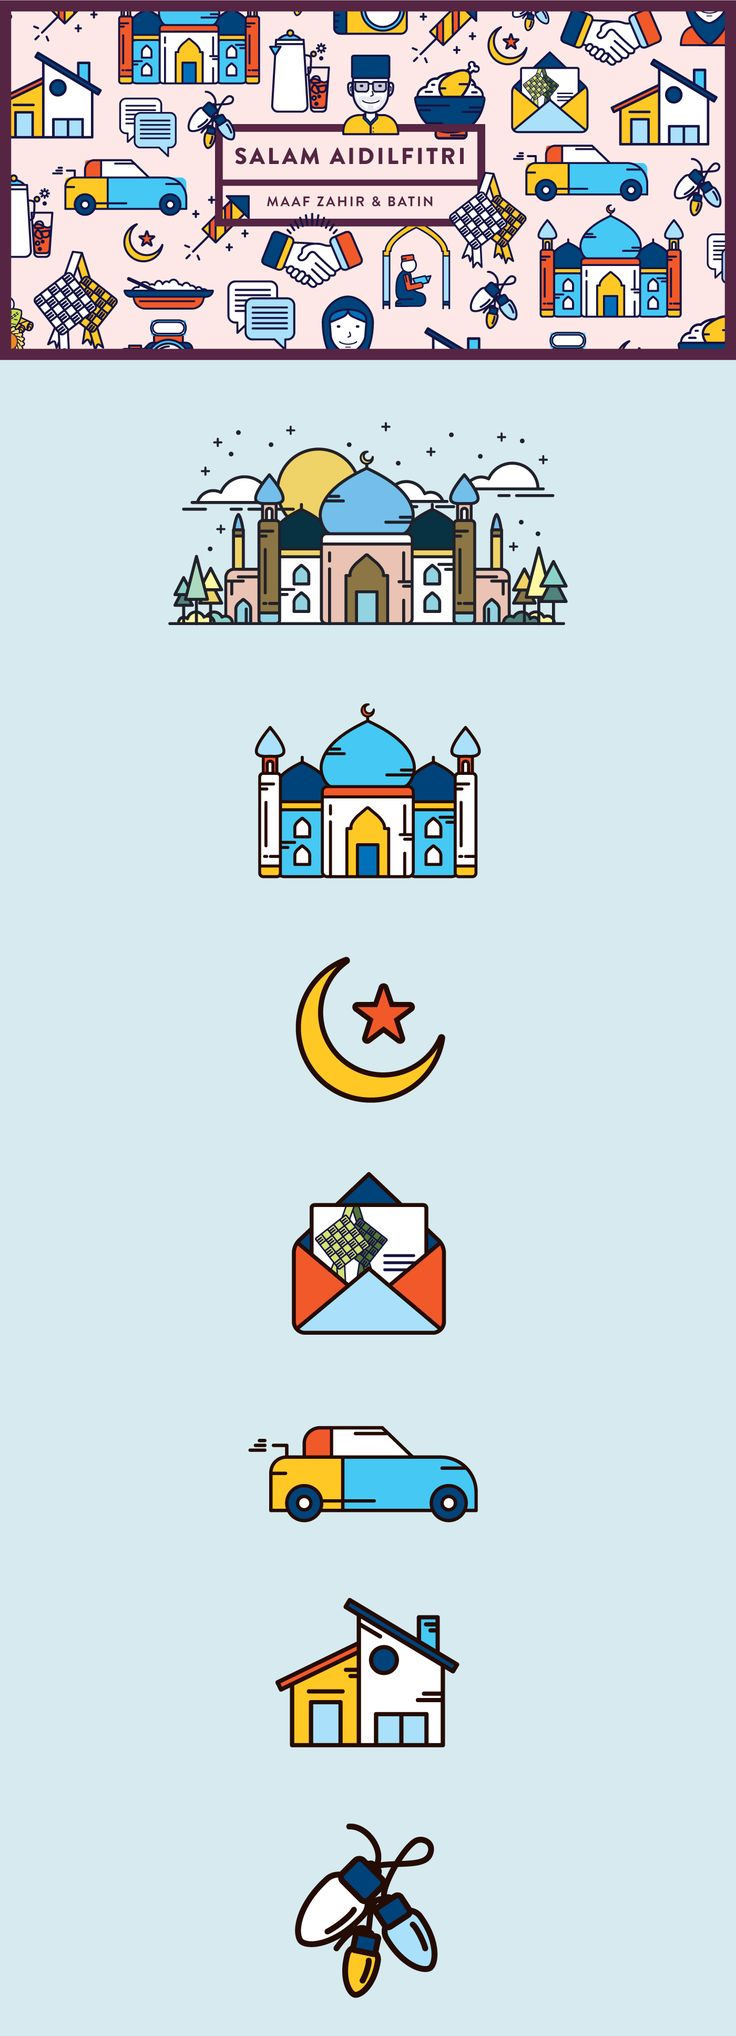 Hari Raya Aidilfitri — Illustrations on Behance